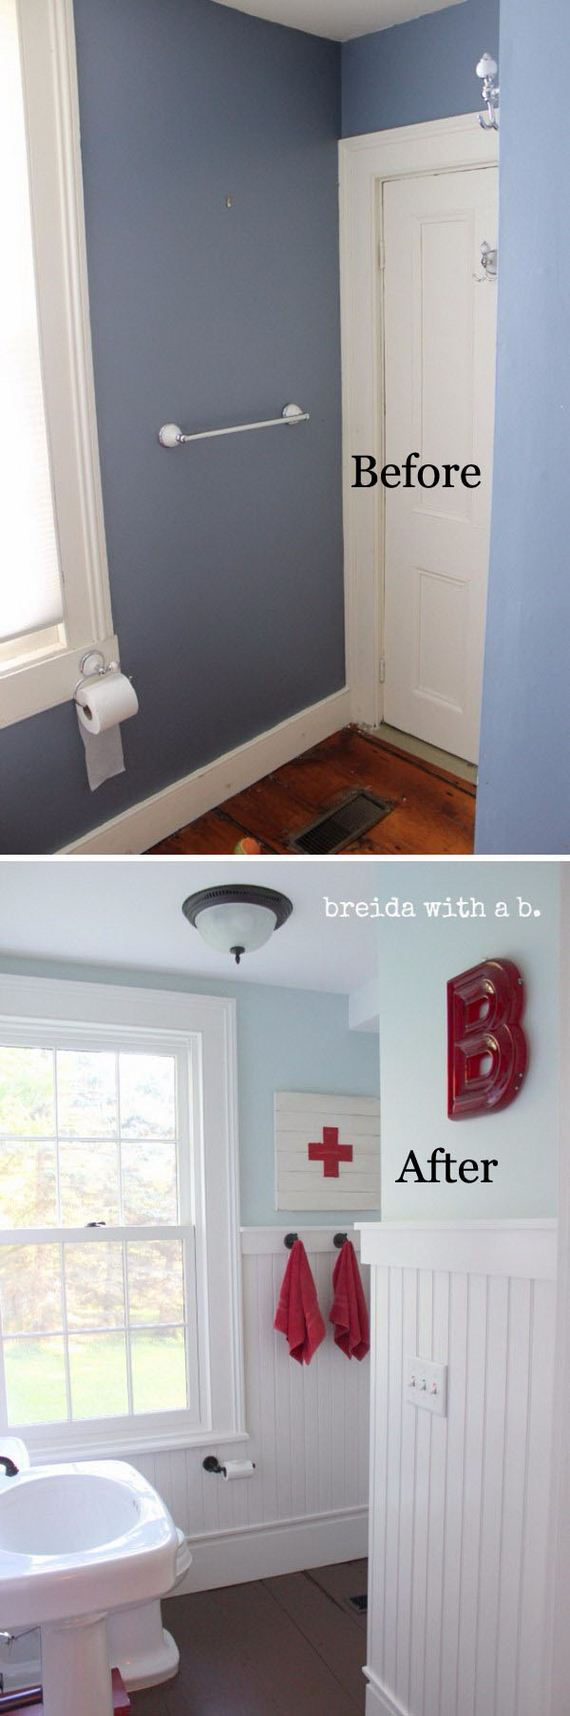 25-awesome-bathroom-makeovers